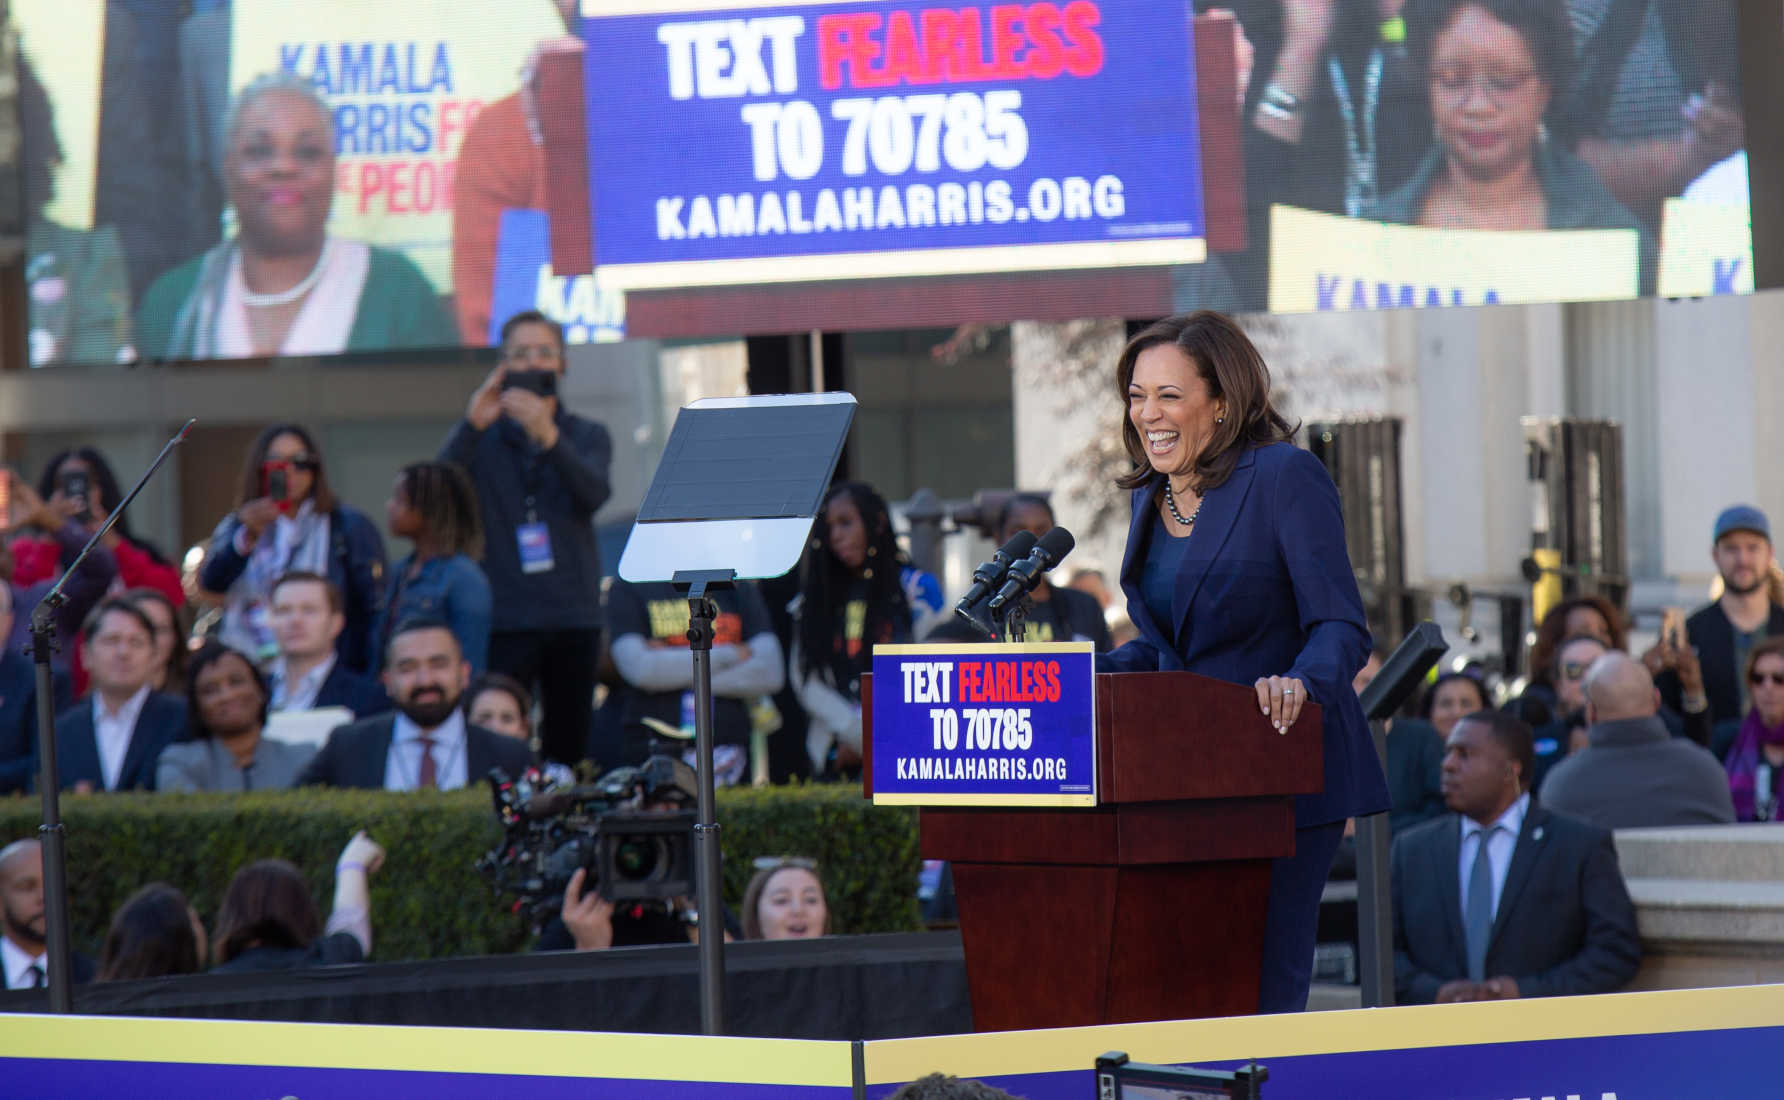 Kamala Harris Calls for Banning AR-15s